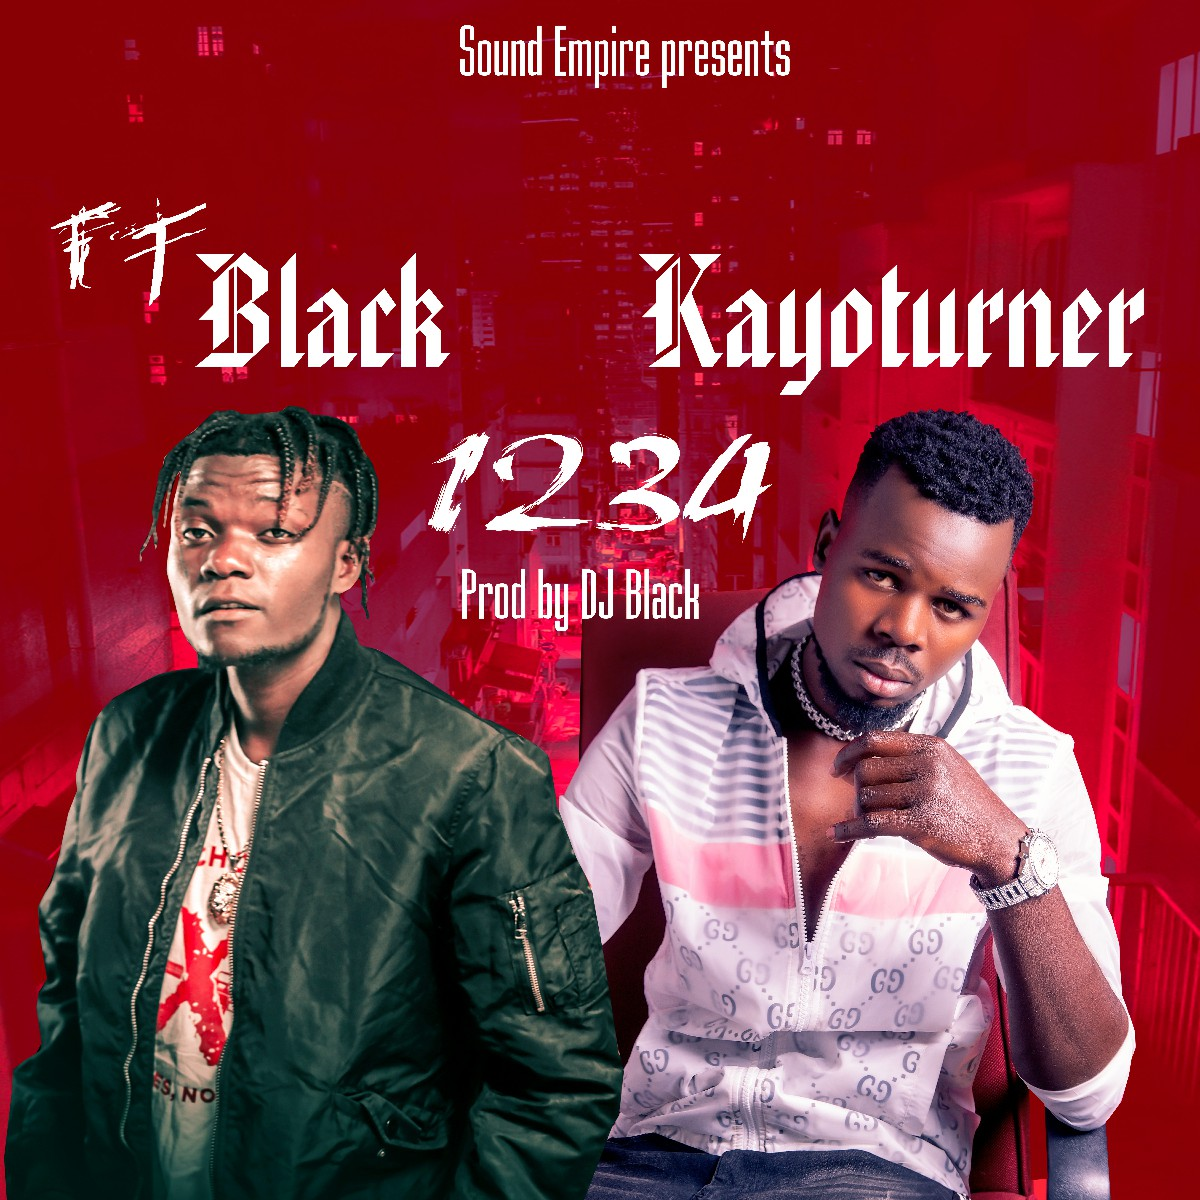 Kayoturner ft. Black - 1234